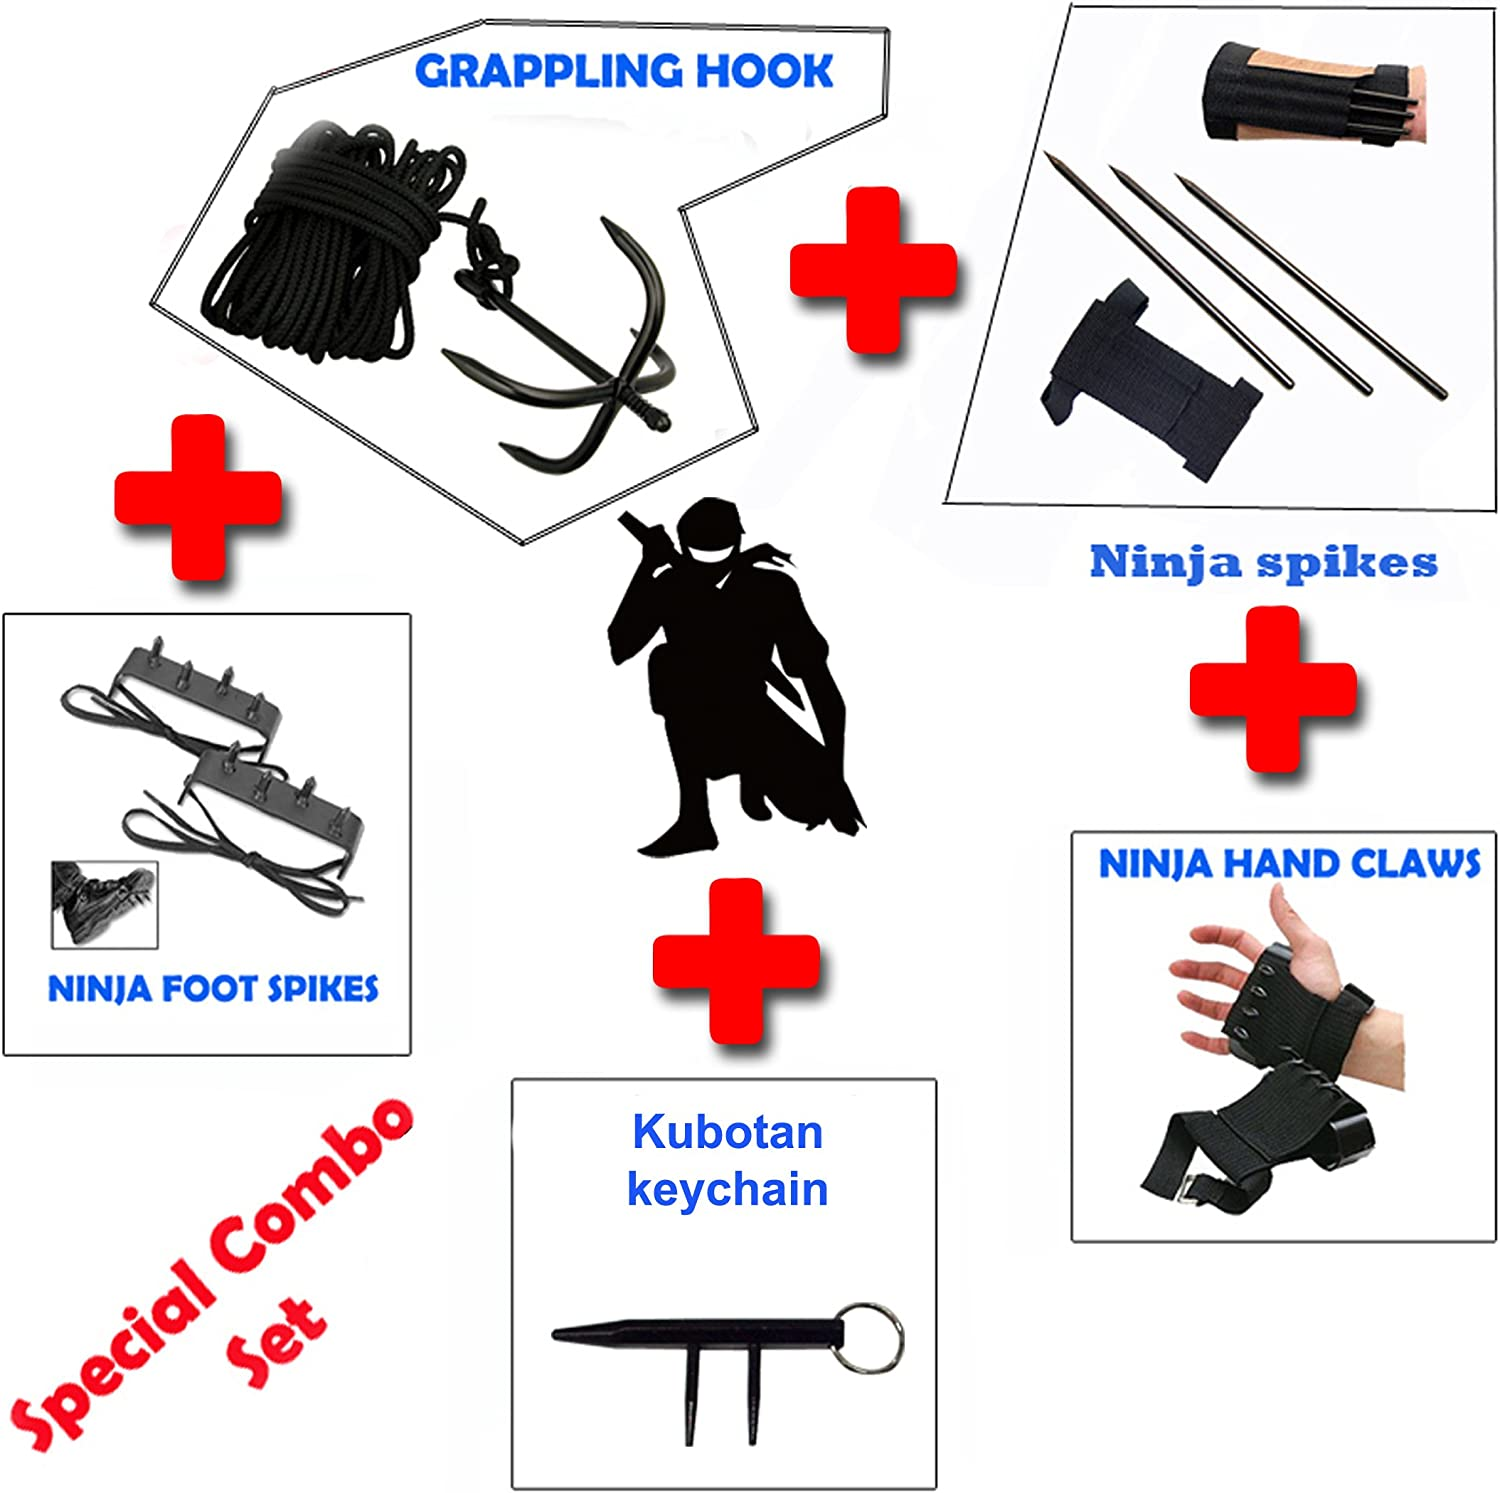 NINJA Special Combo Grappling Hook,Hand claws,Foot Spike, & KUNAI SPIKES THROWING KNIFE